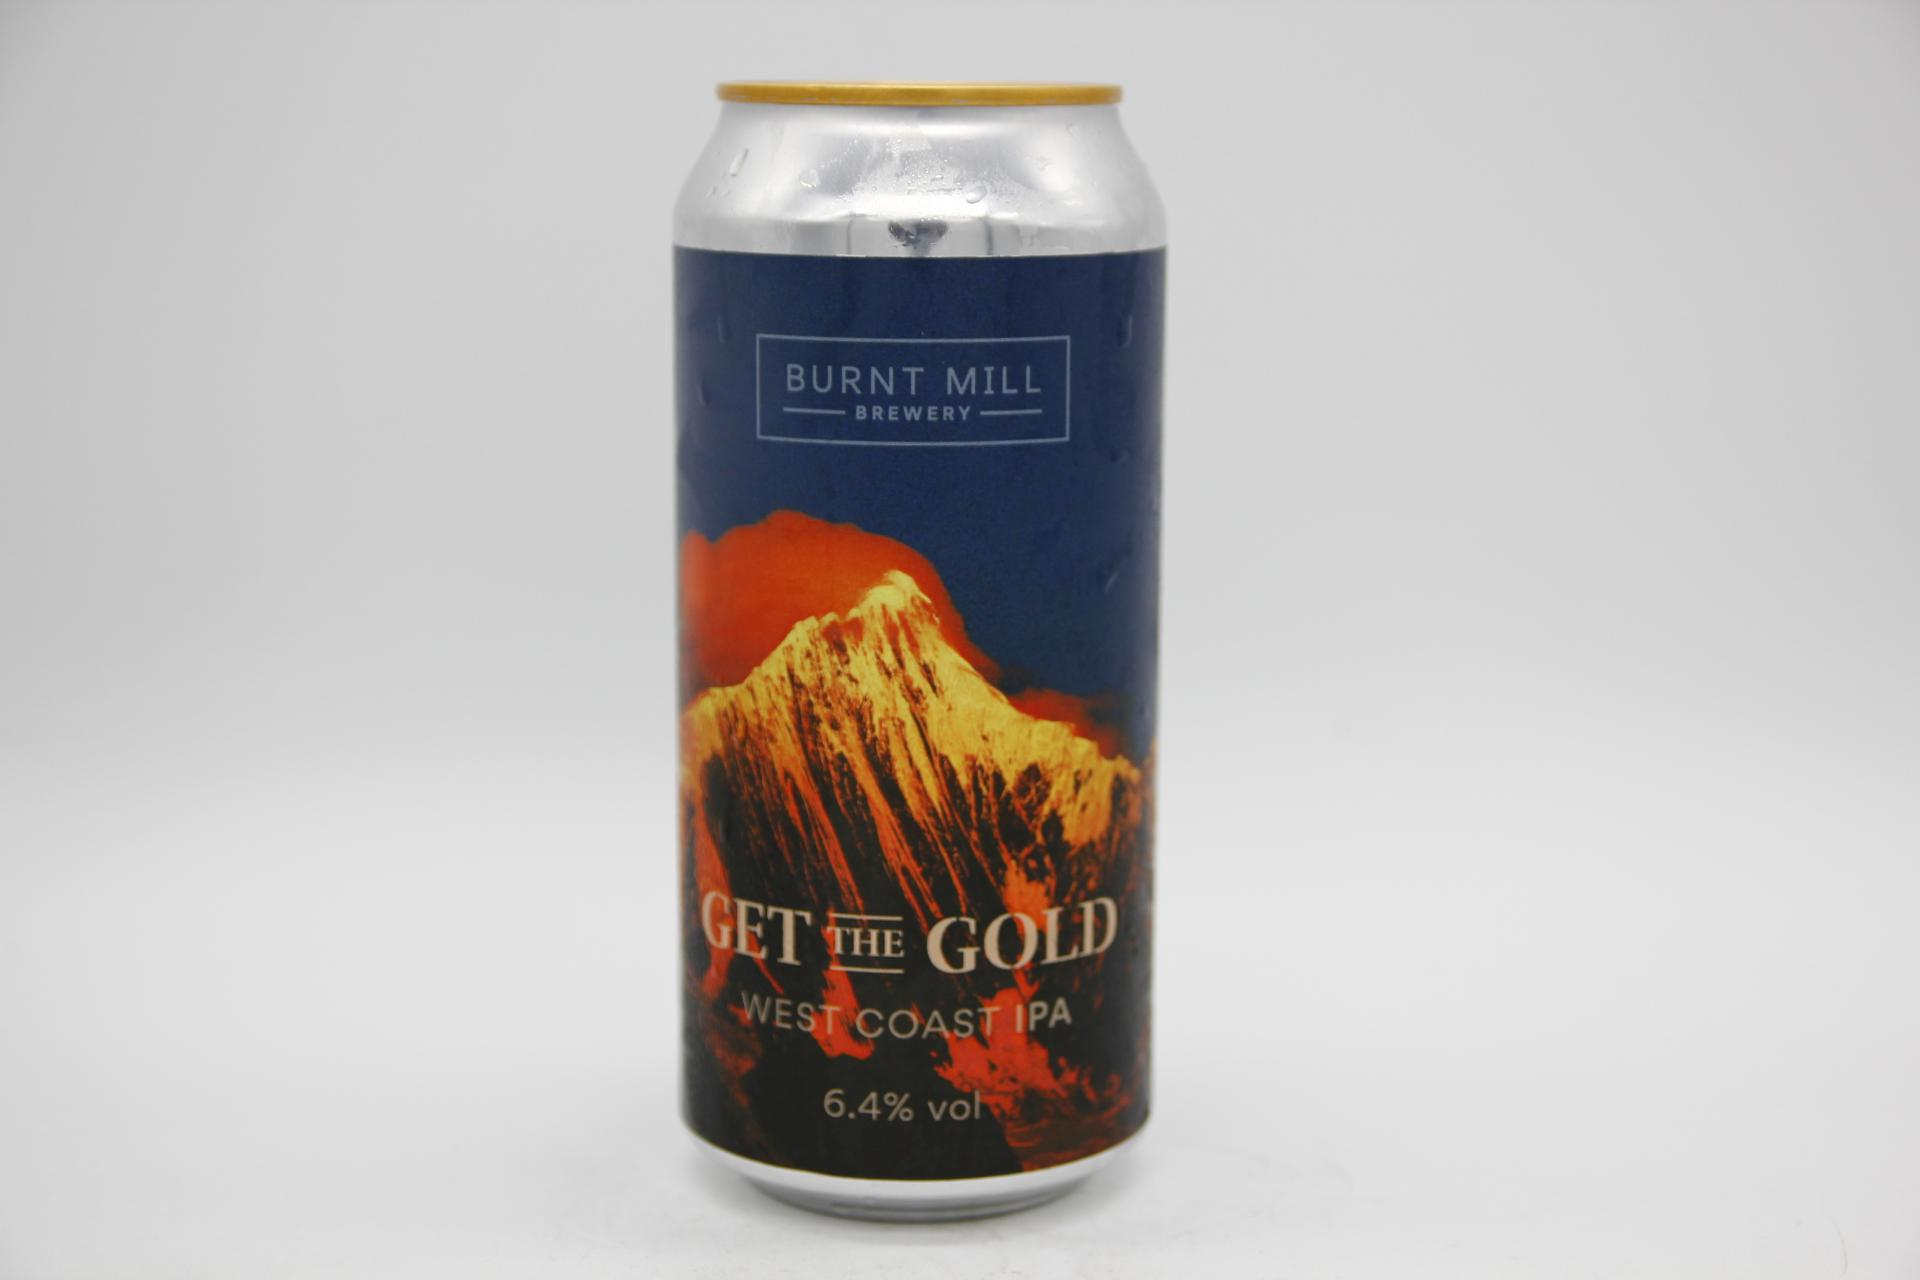 BURNT MILL - GET THE GOLD 44cl